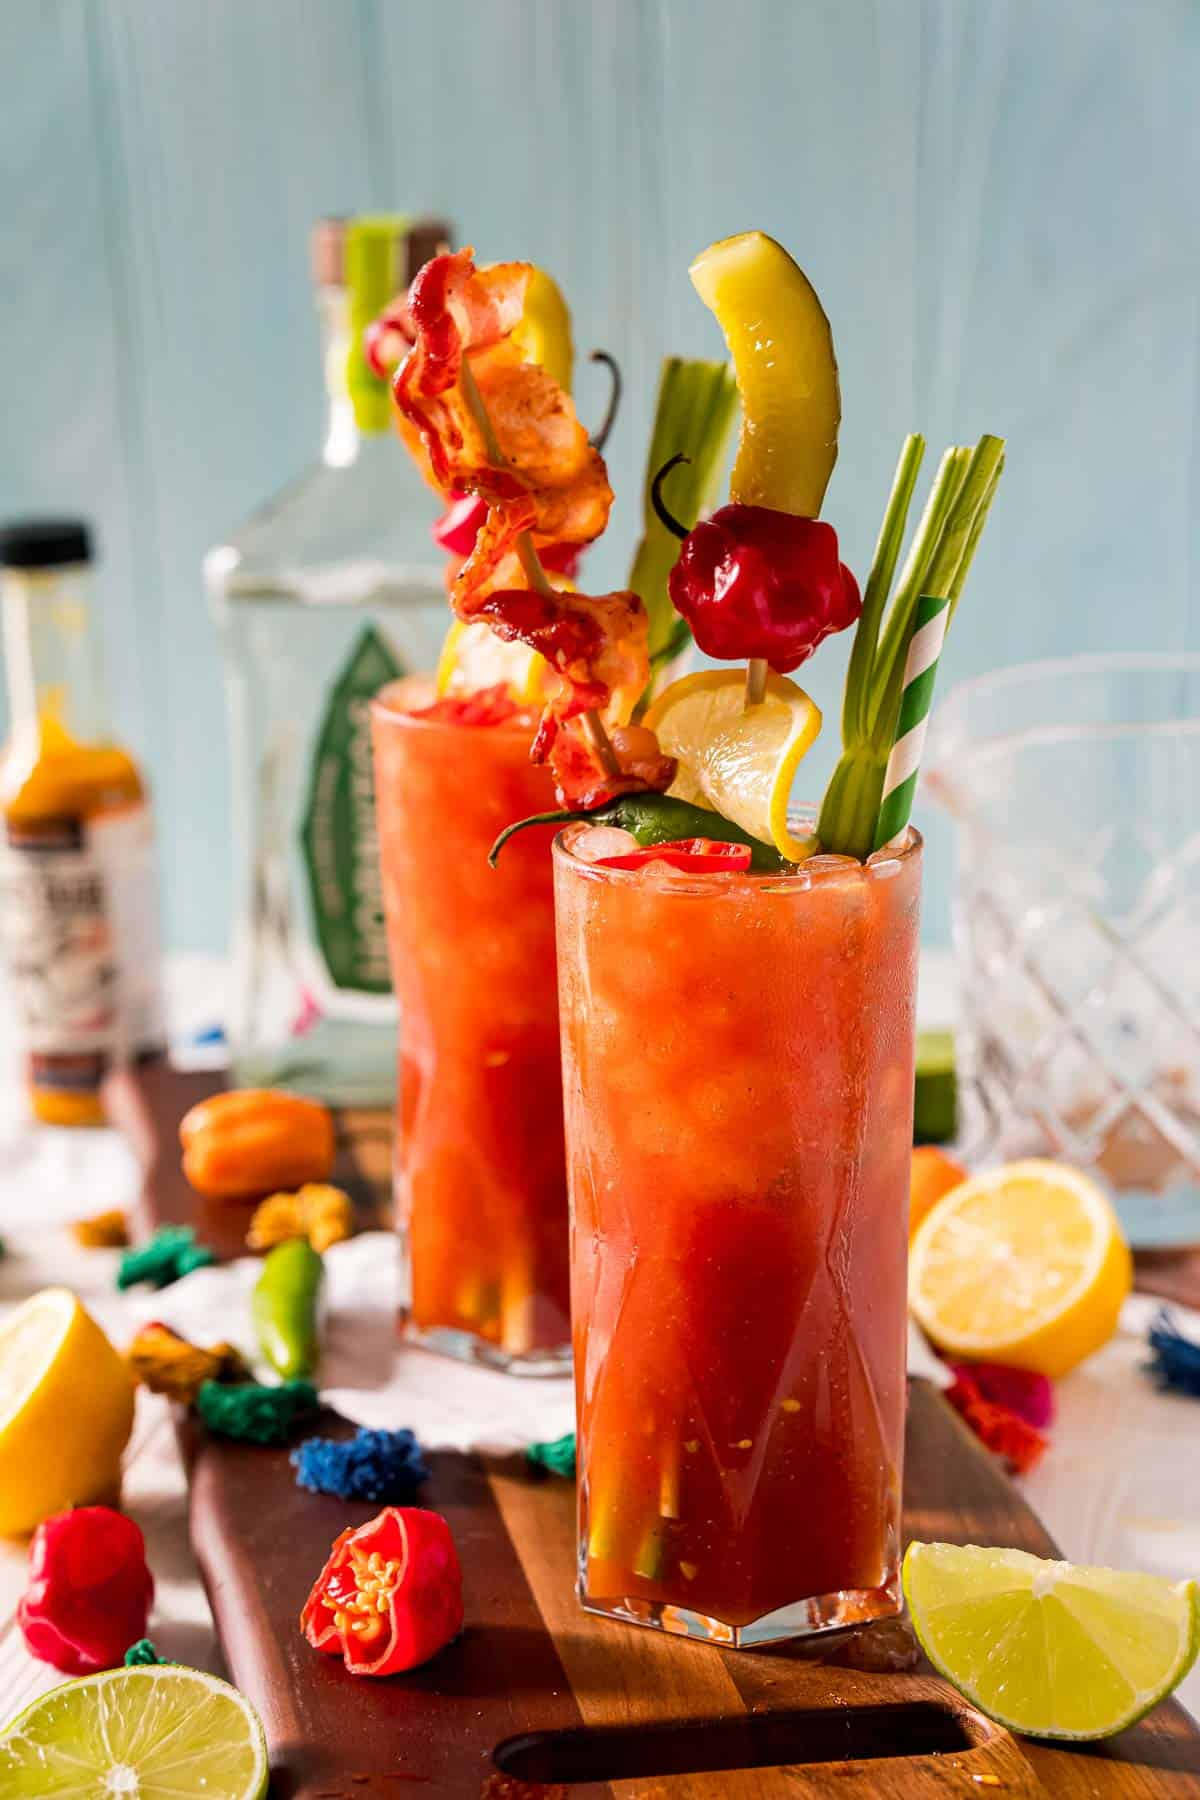 Two heavily-garnished tomato juice based cocktails in tall glasses.